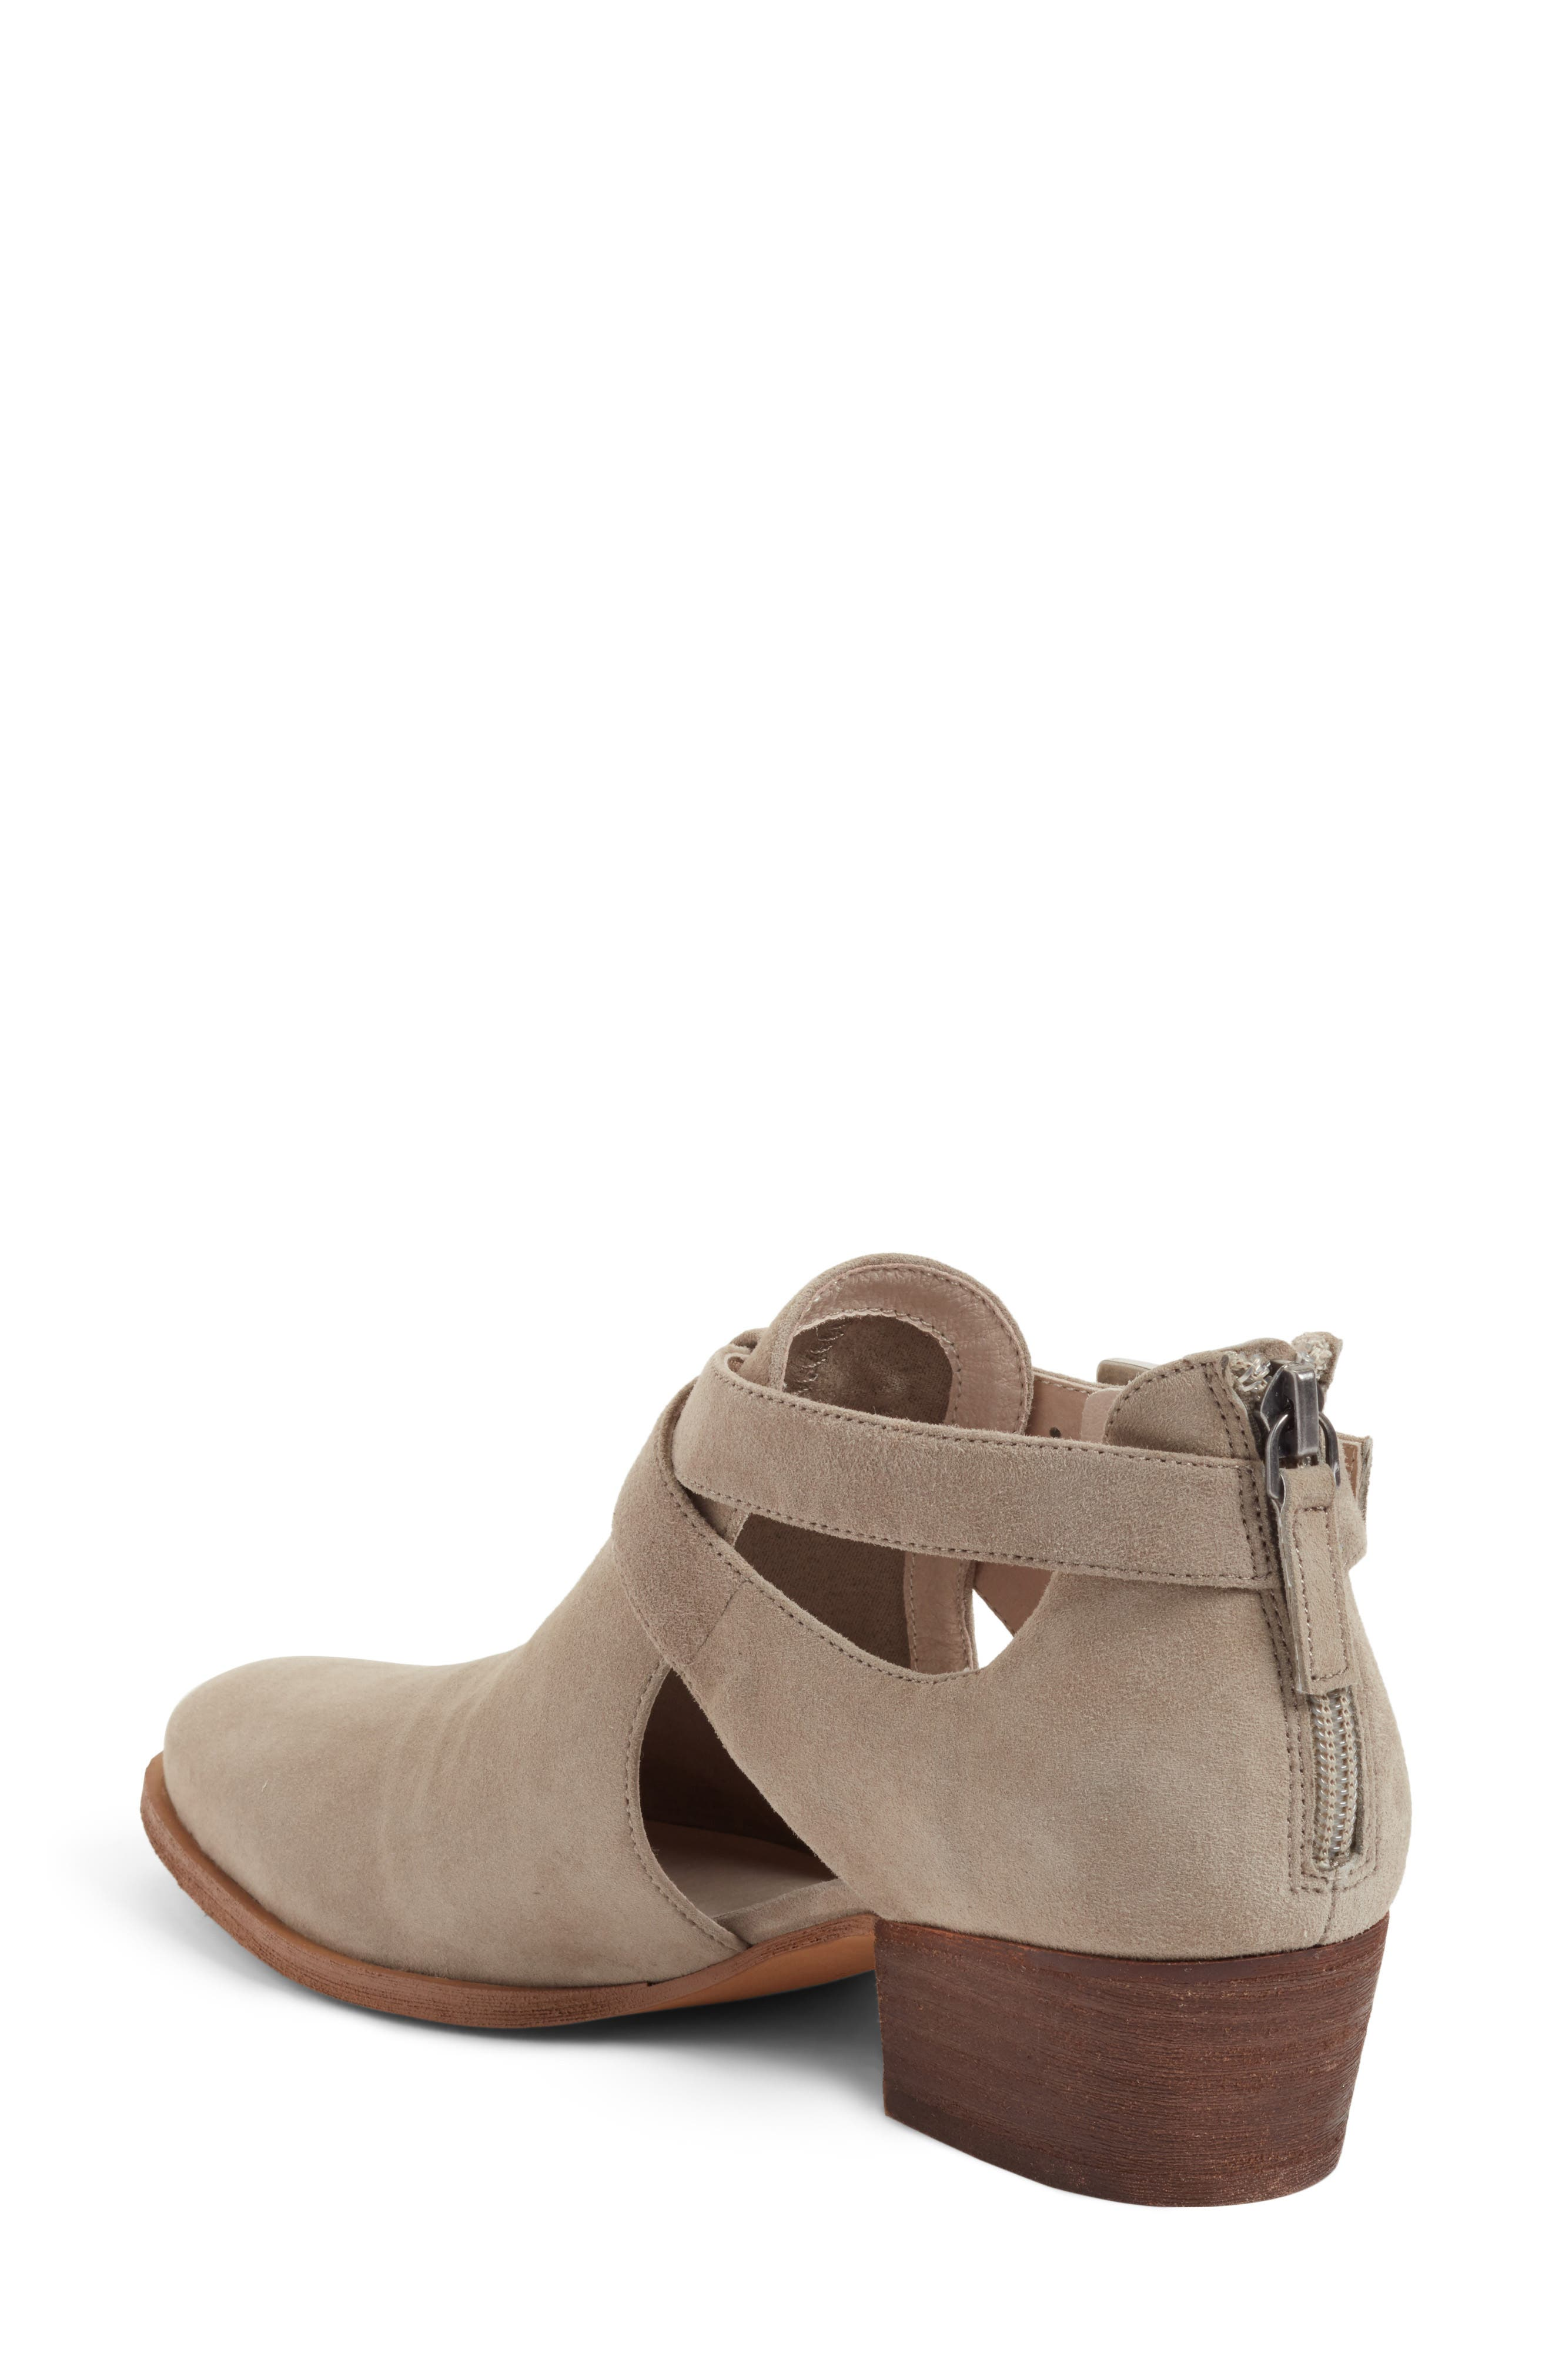 Tina Bootie,                             Alternate thumbnail 2, color,                             Stone Suede